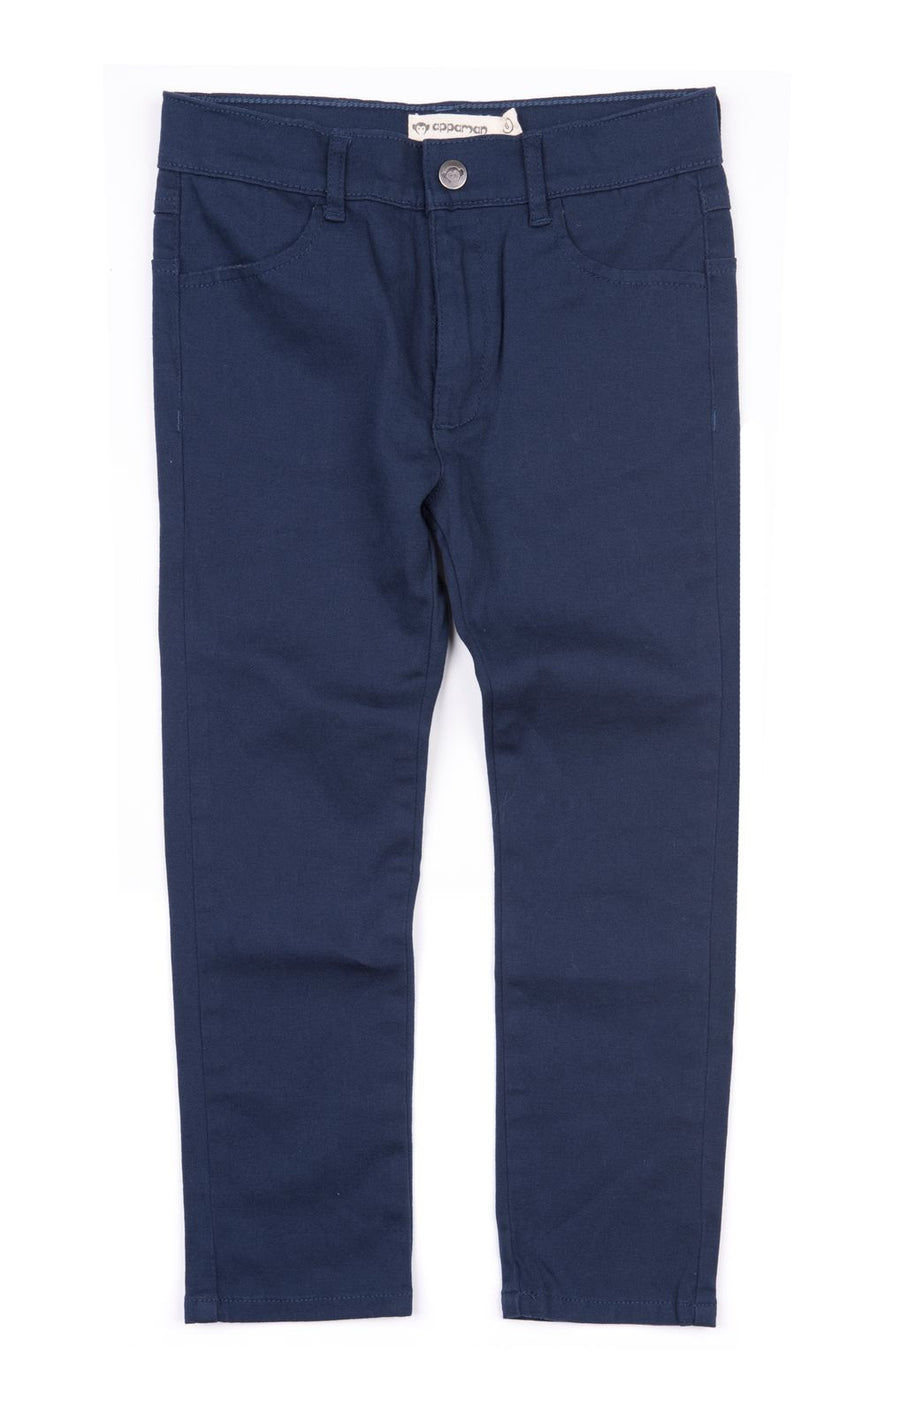 Galaxy Spring Skinny Twill Pants by Appaman